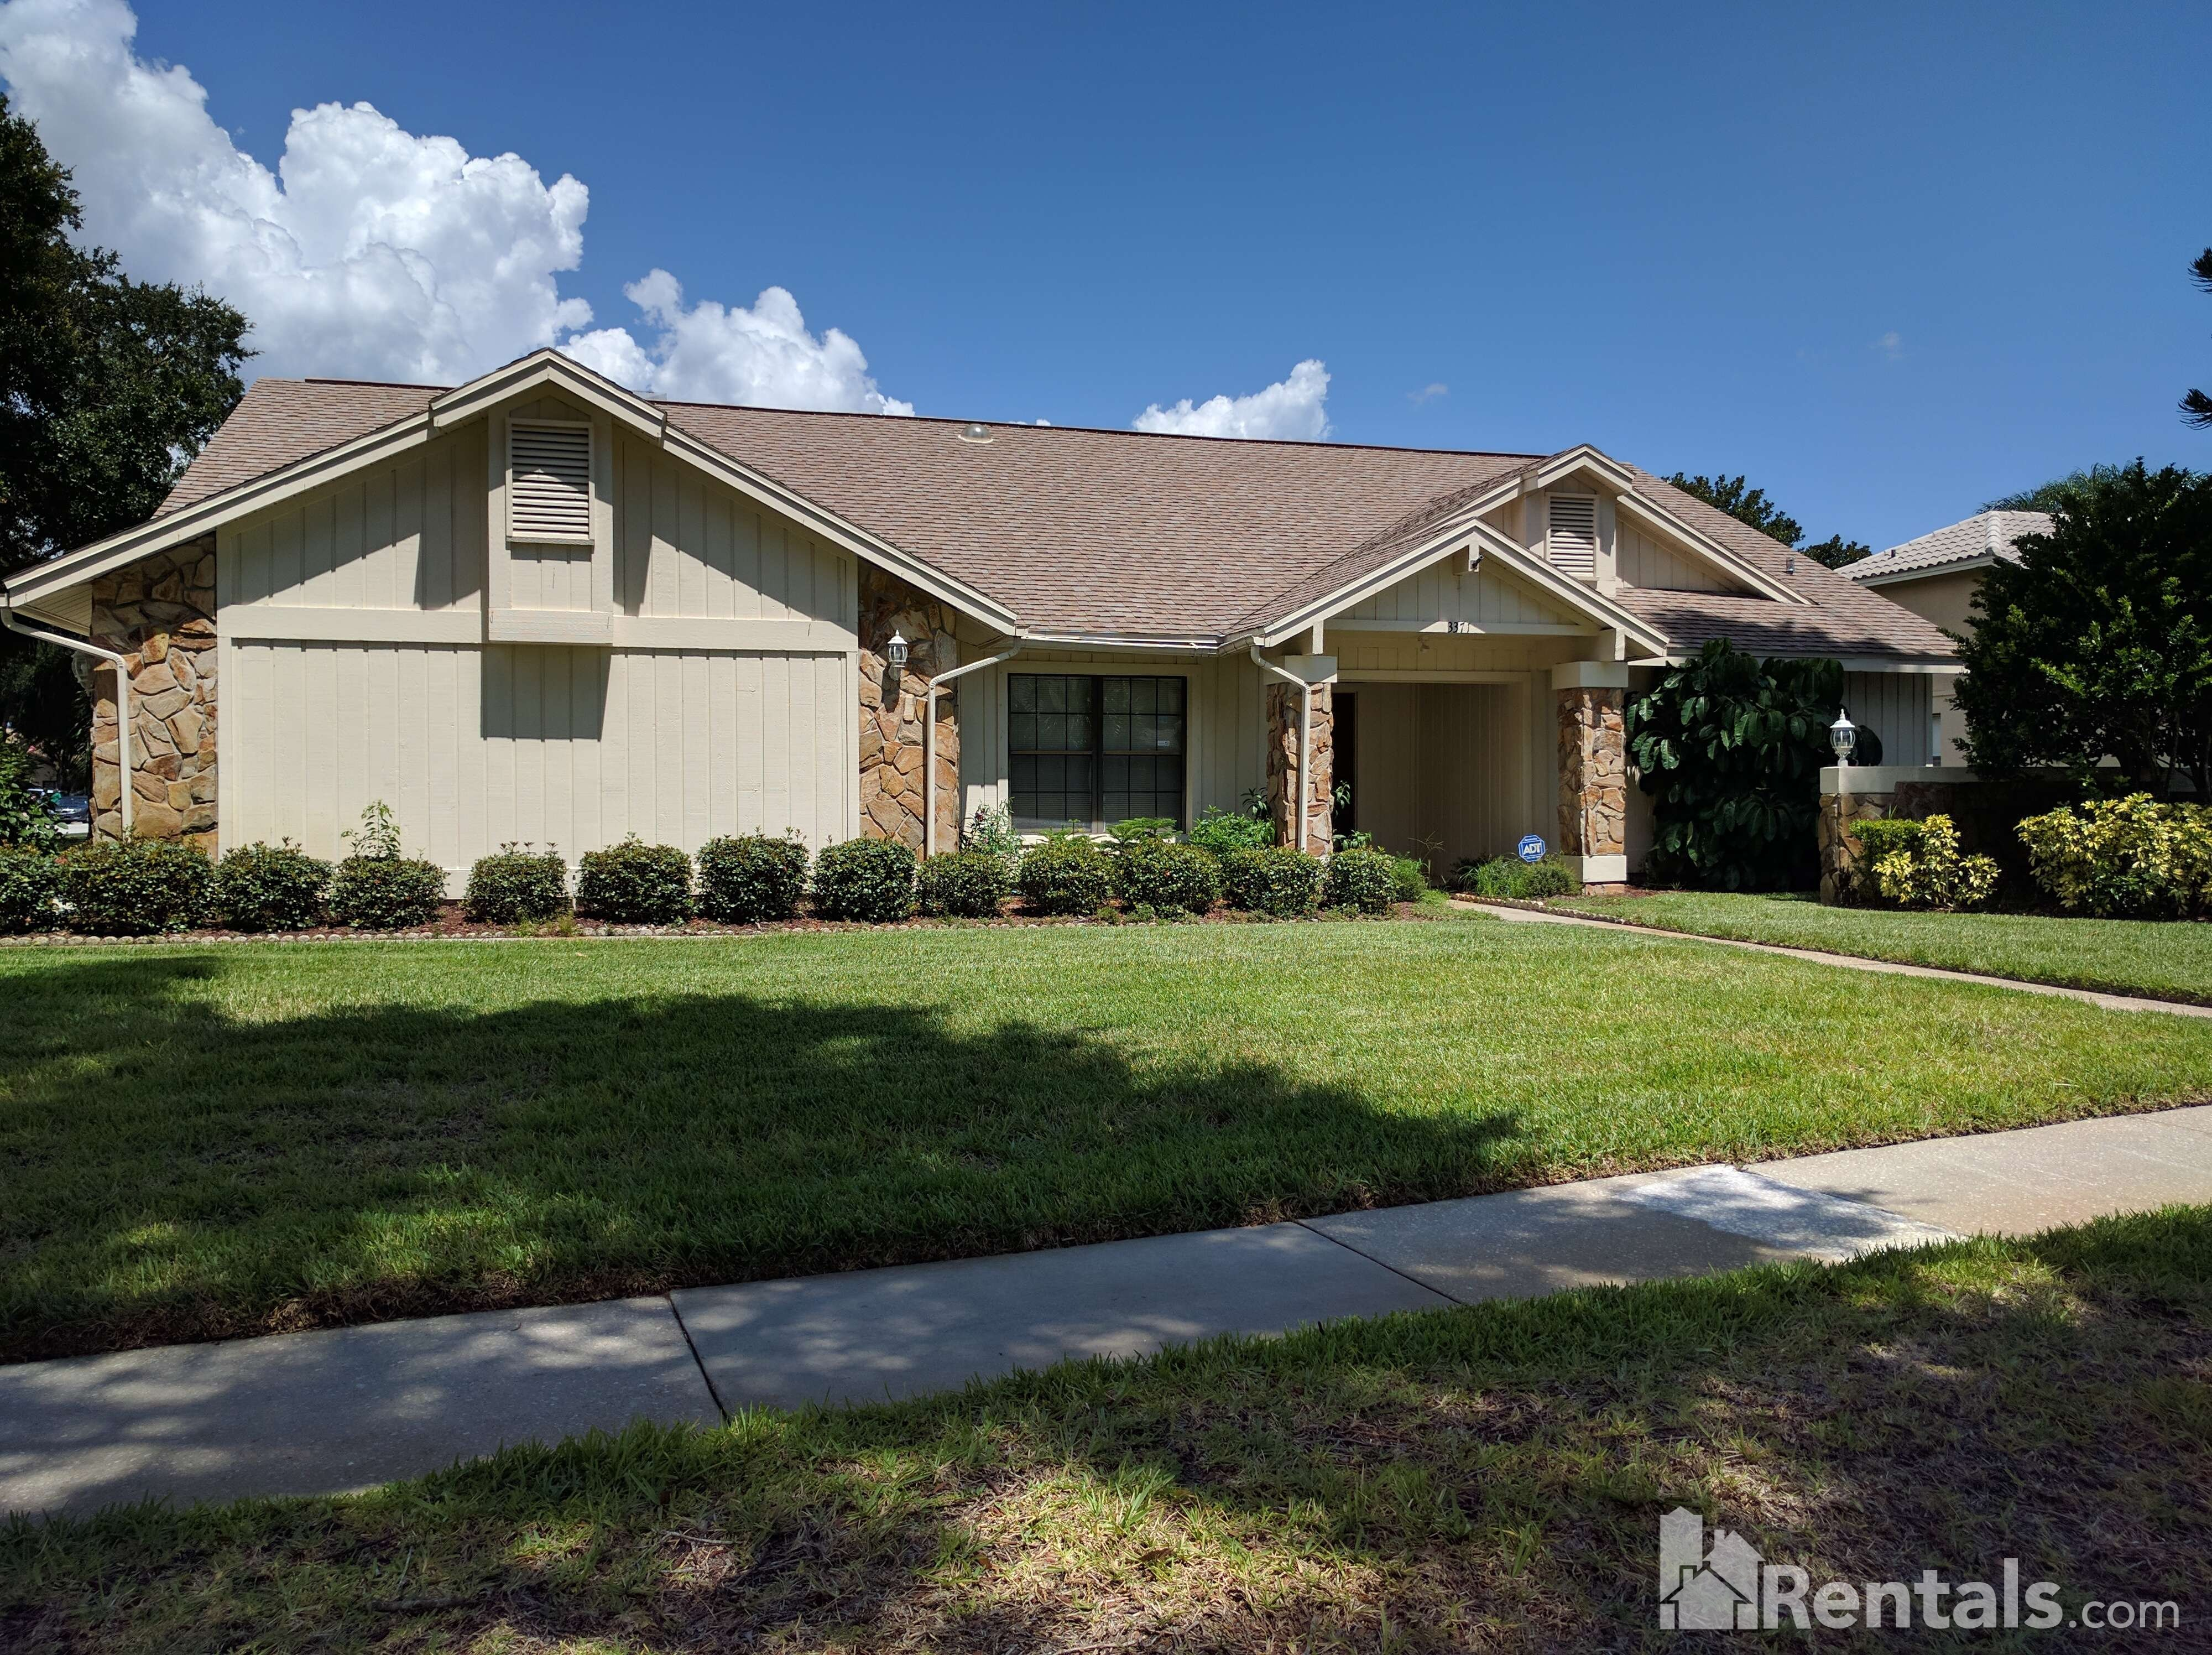 Apartments And Houses For Rent Near Me In Clearwater